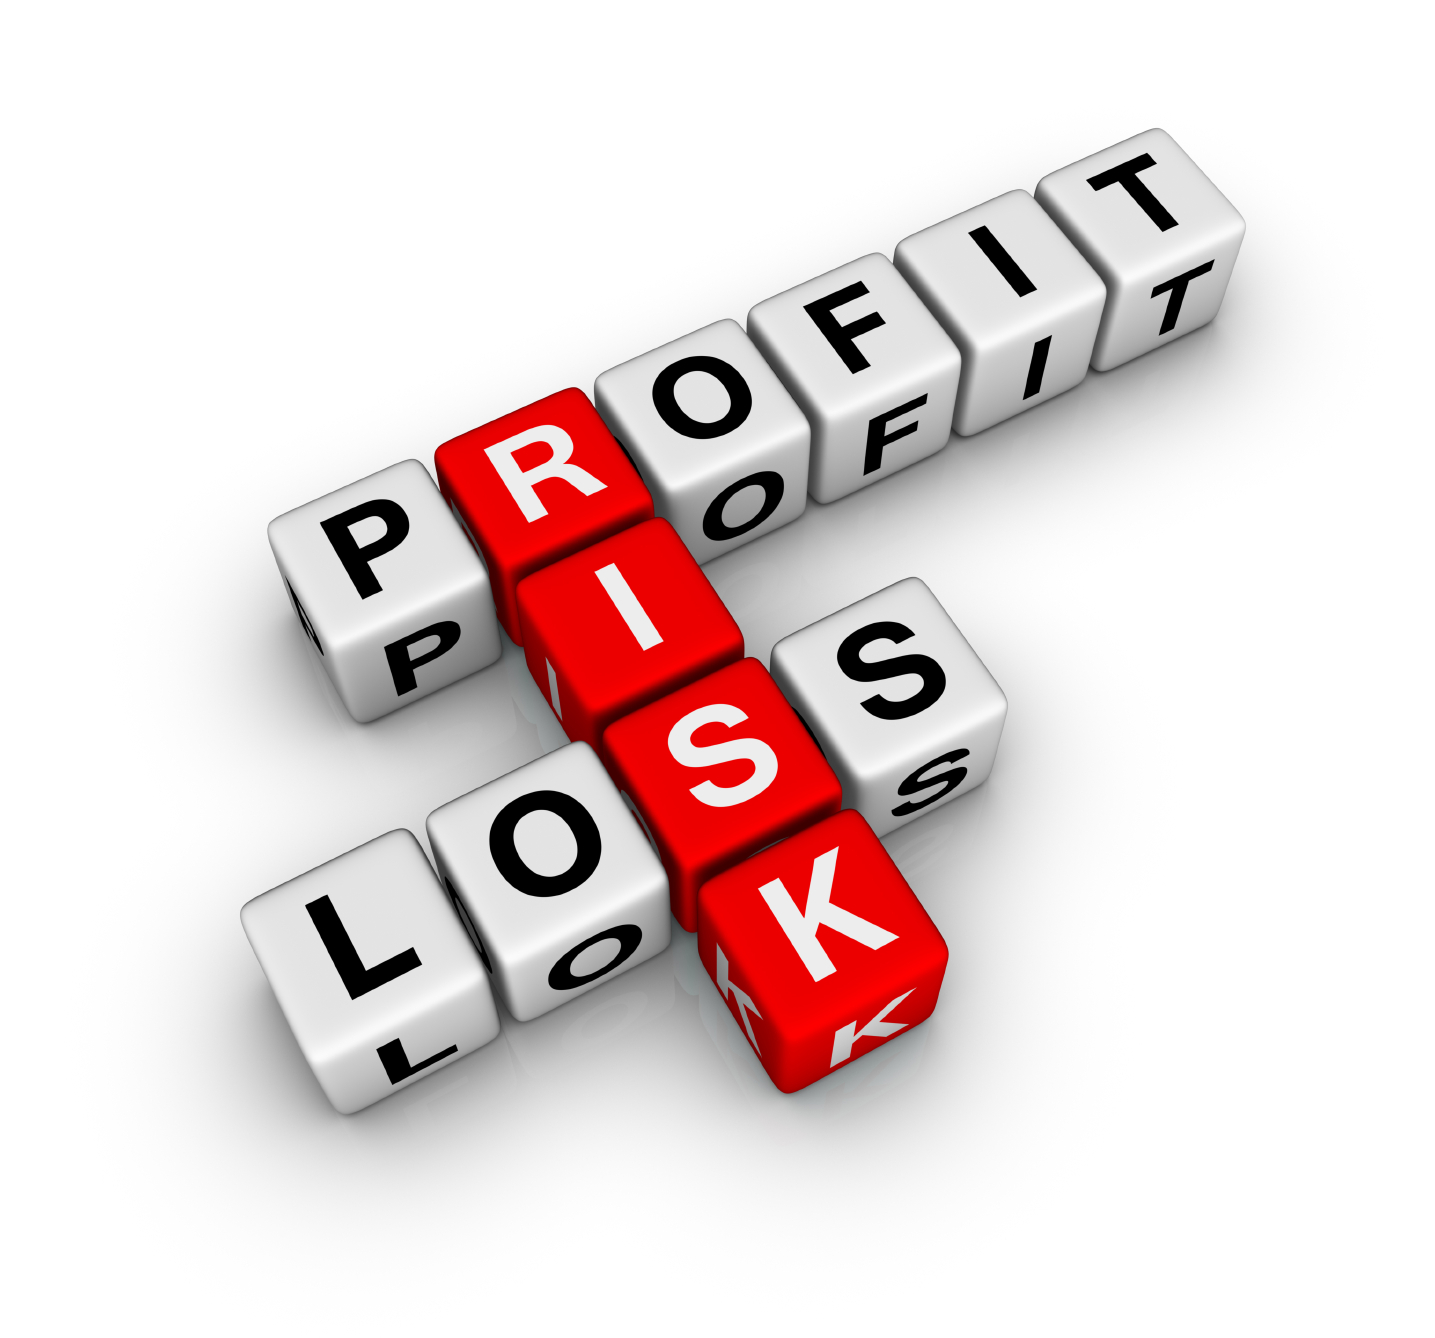 Profit: See 10 Ways To Cut Costs And Improve Your Profits